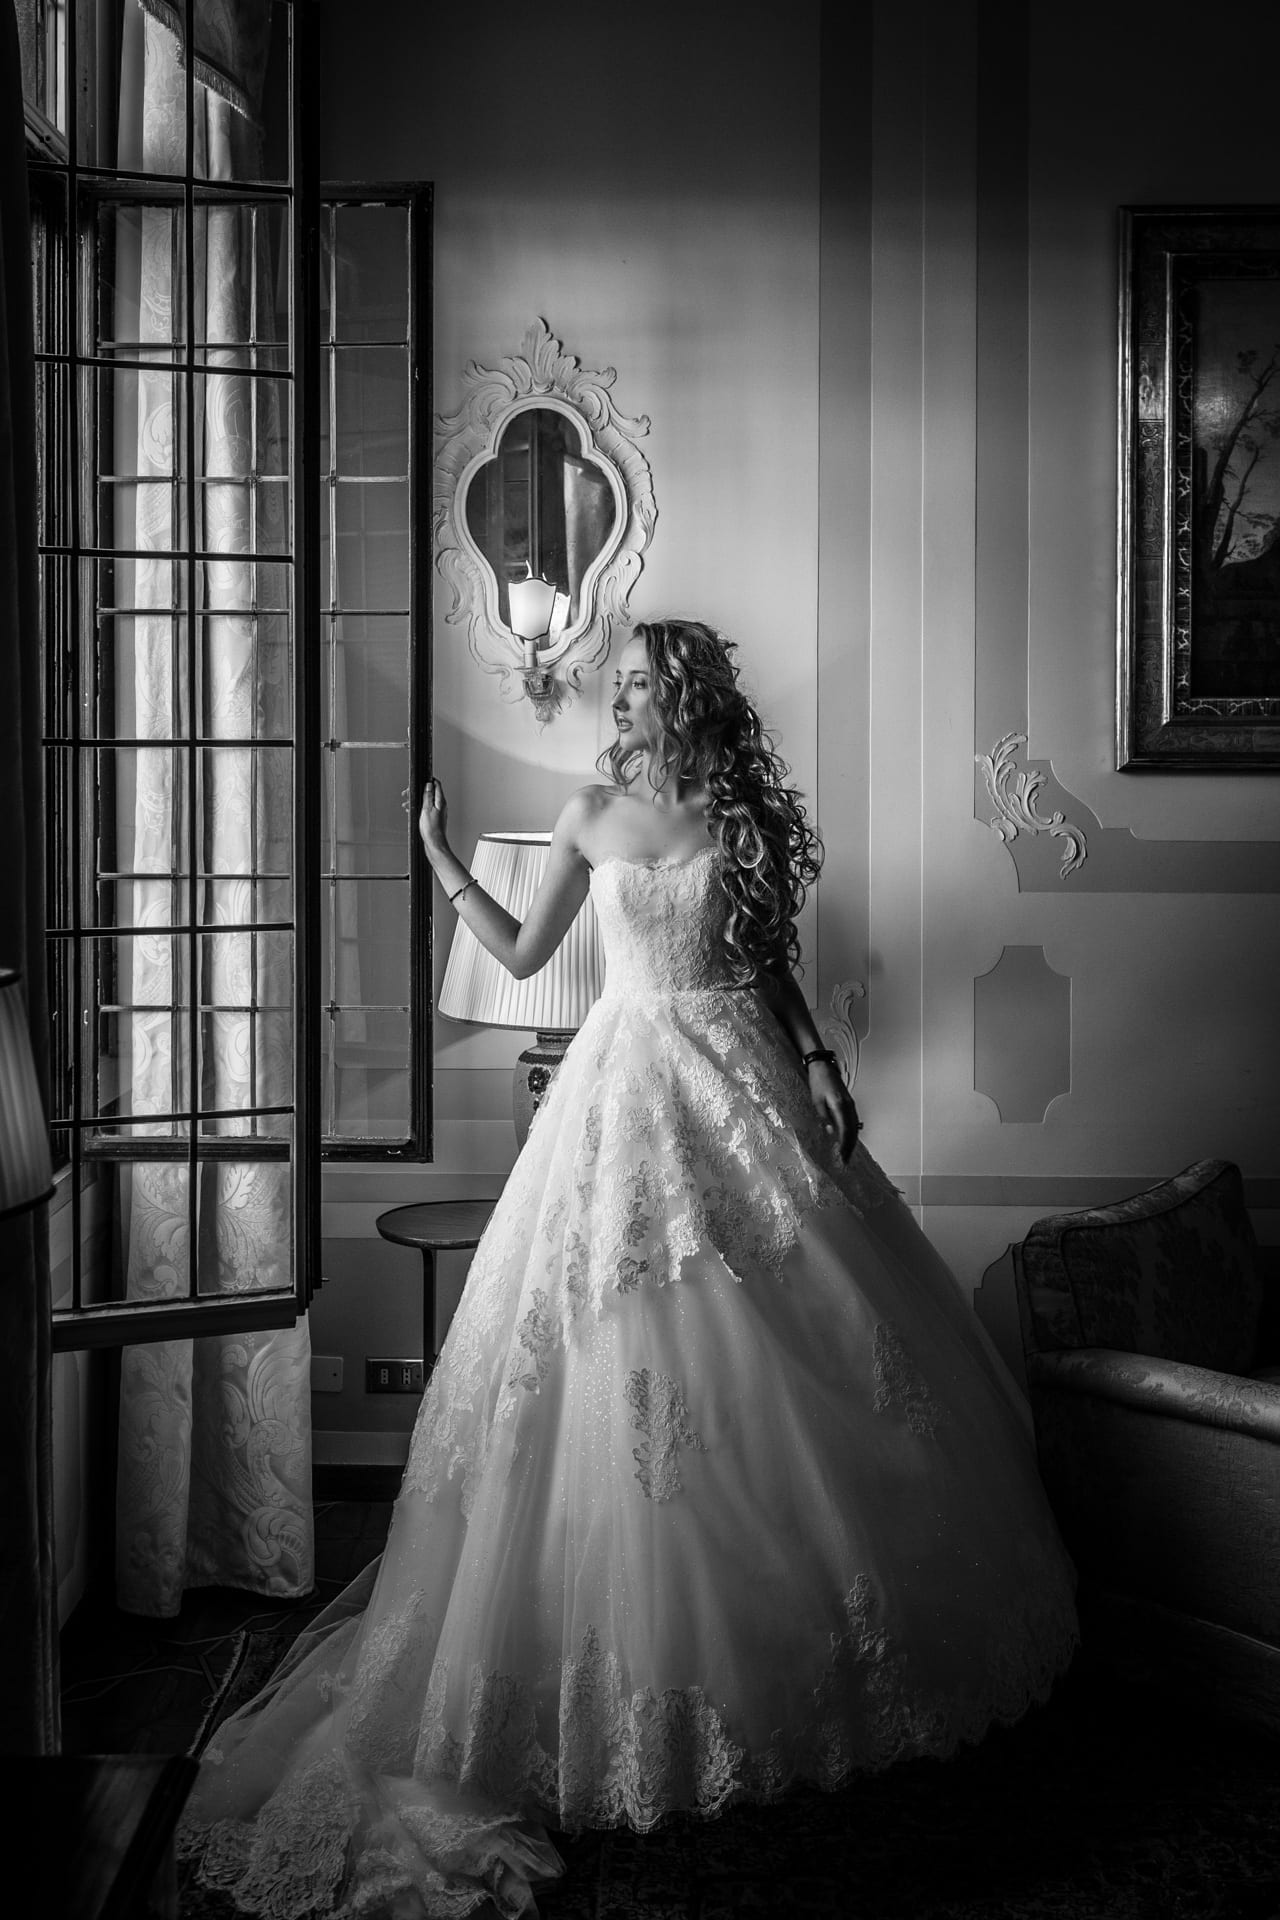 https://righiphotography-com.s3.eu-central-1.amazonaws.com/wp-content/uploads/2020/02/02183348/Weddin-Photo-Classic-Style-Studio-Fotografico-Righi-RIGHI-20.jpg